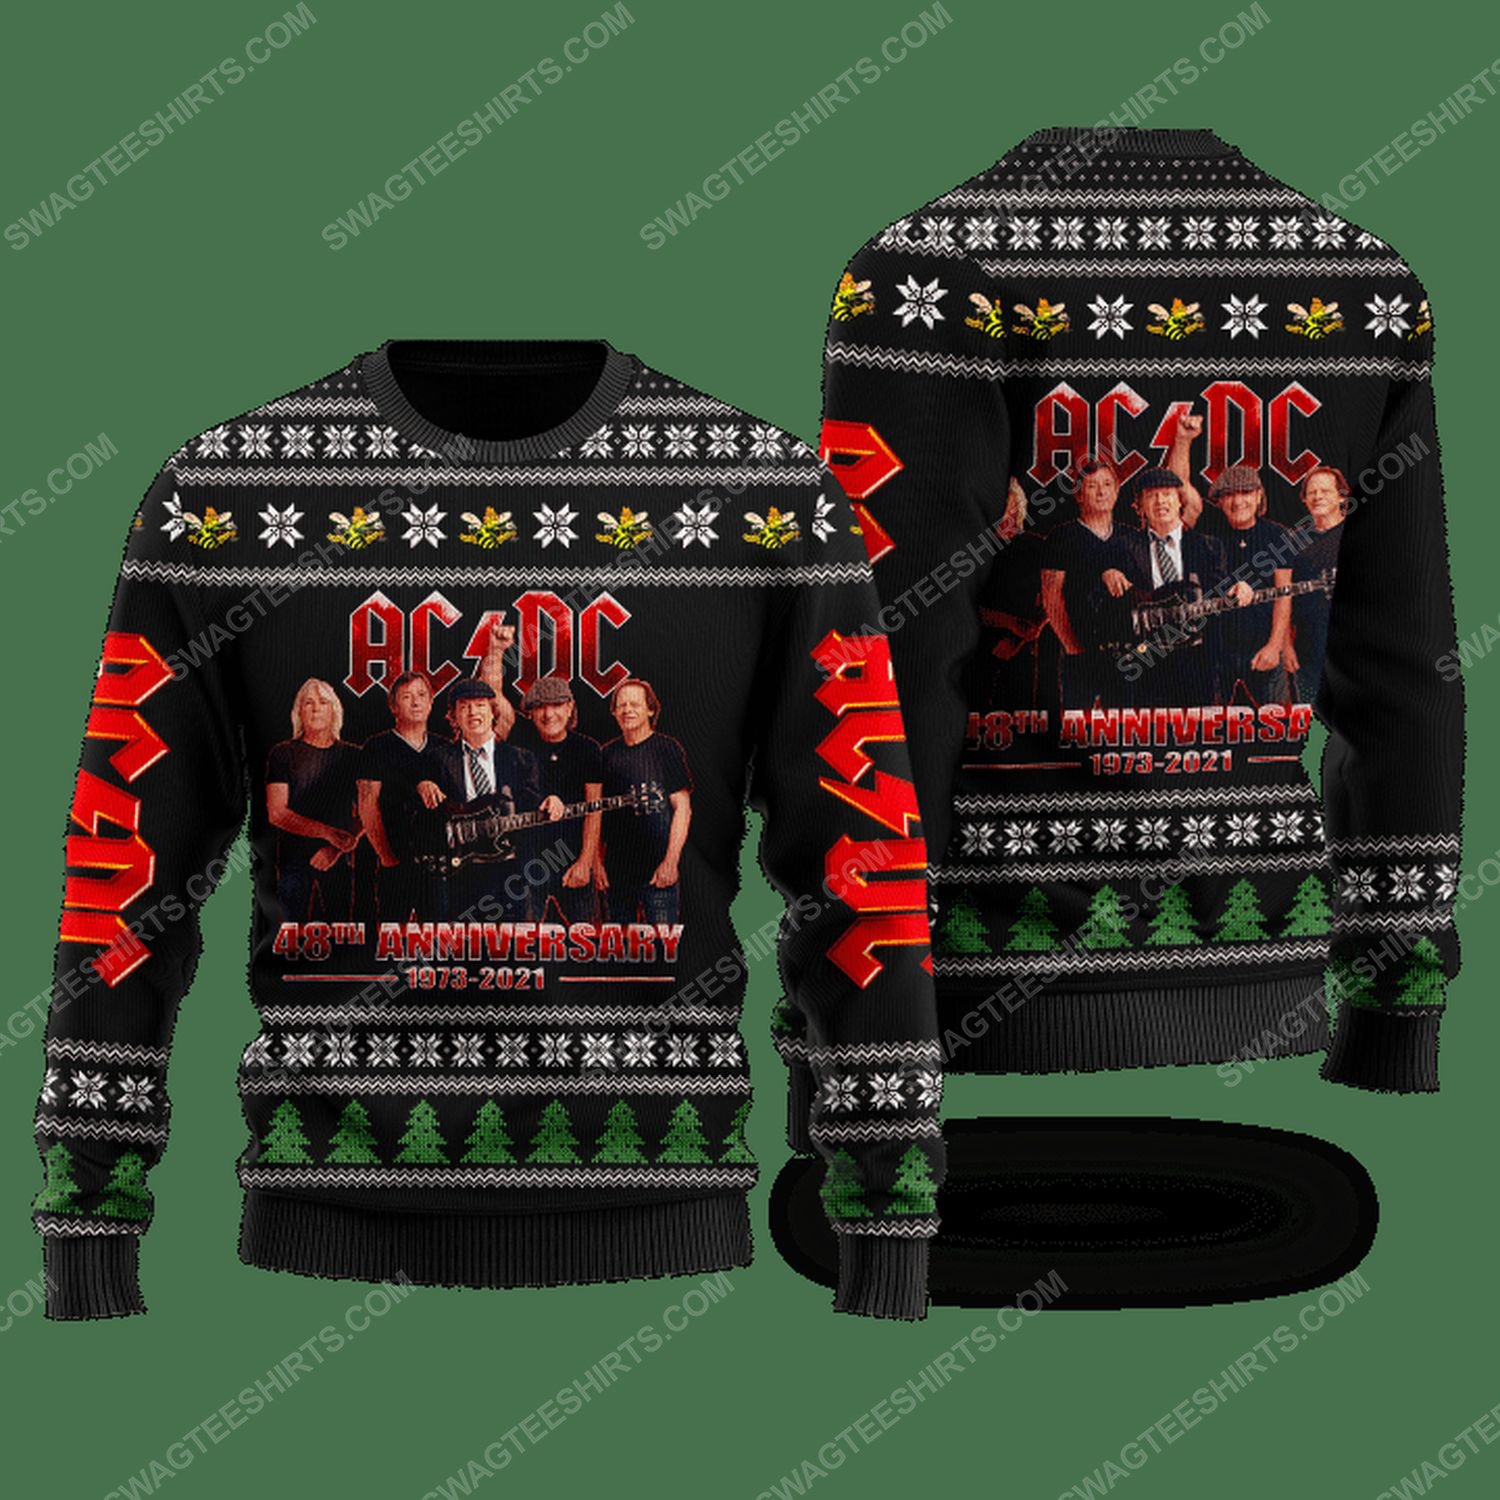 Rock band ac dc 48th anniversary ugly christmas sweater